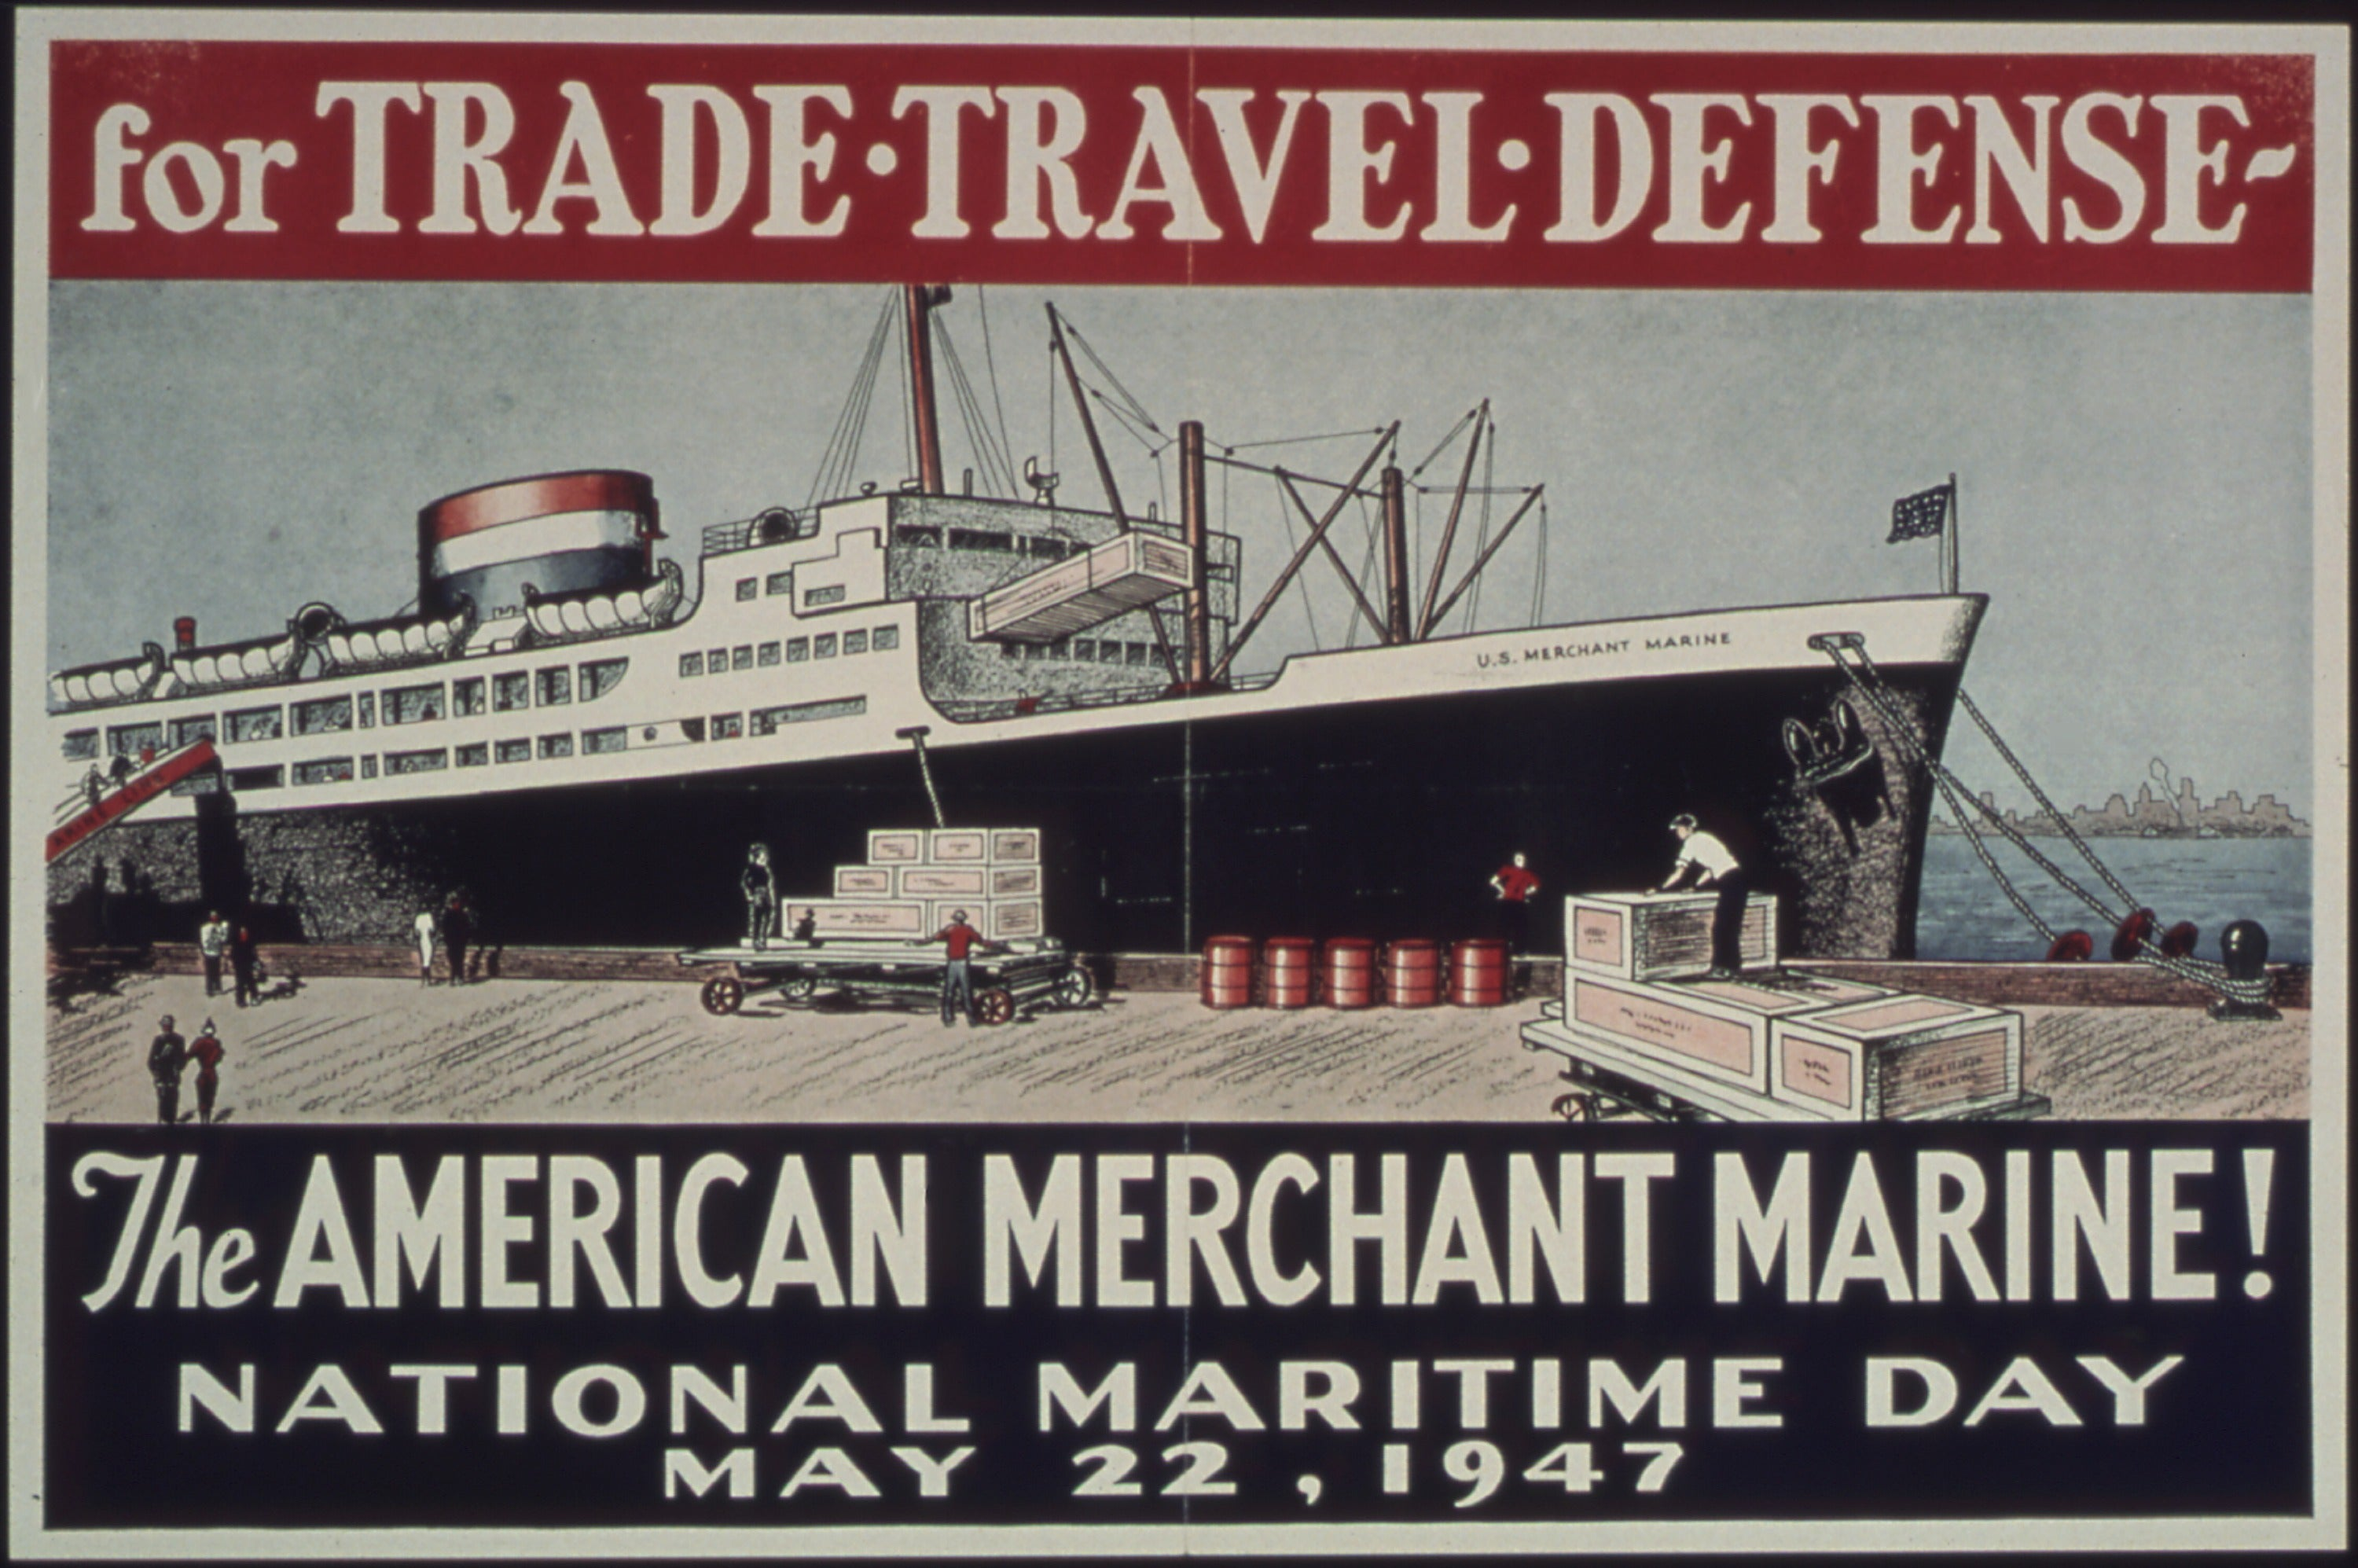 Merchant Marines Poster from 1947